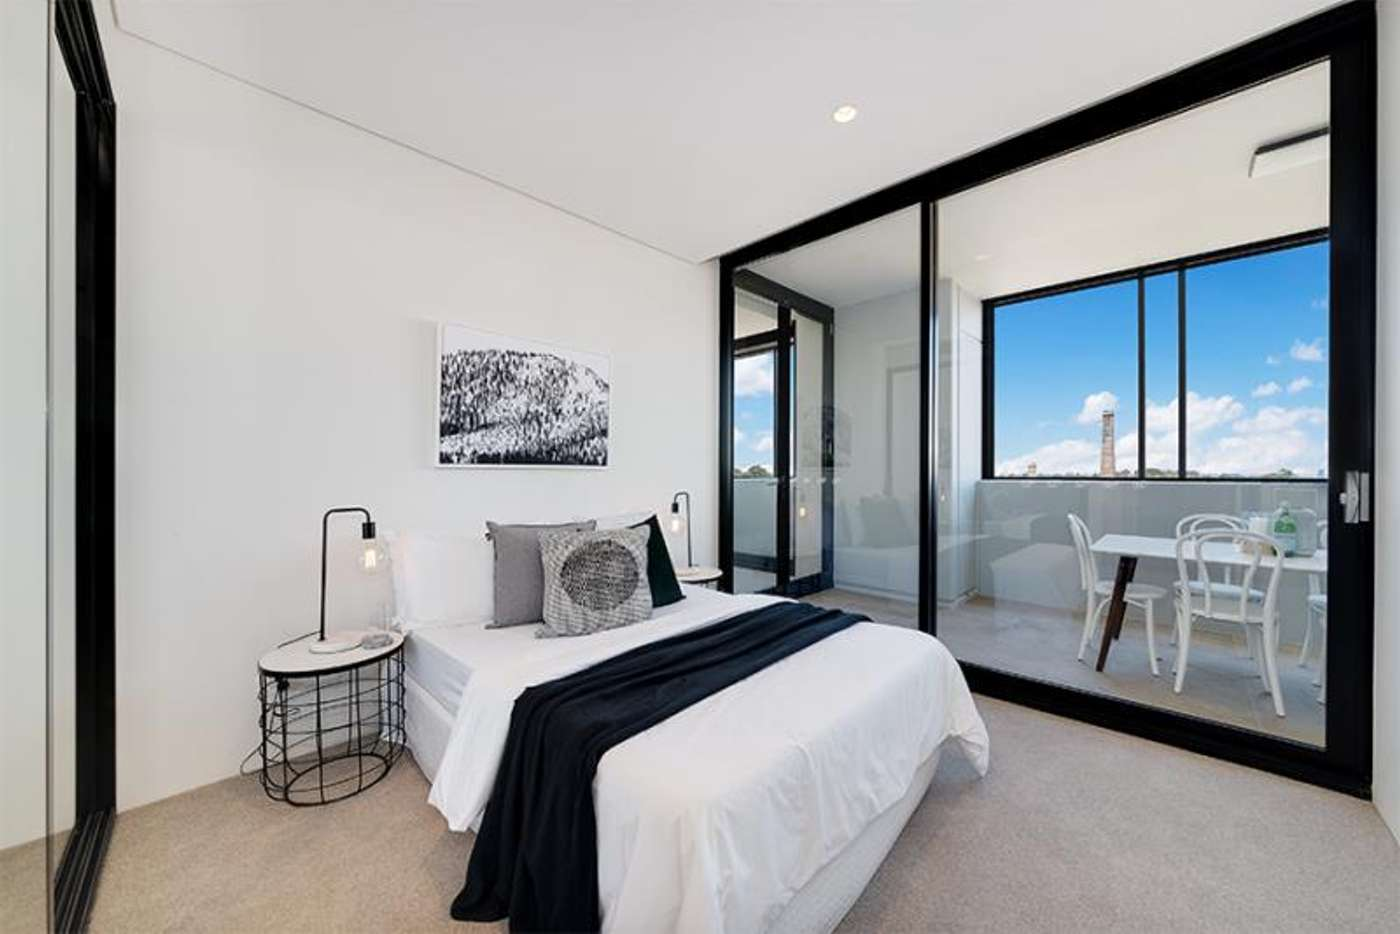 Sixth view of Homely apartment listing, H4, G07/86 Mobbs Lane, Eastwood NSW 2122